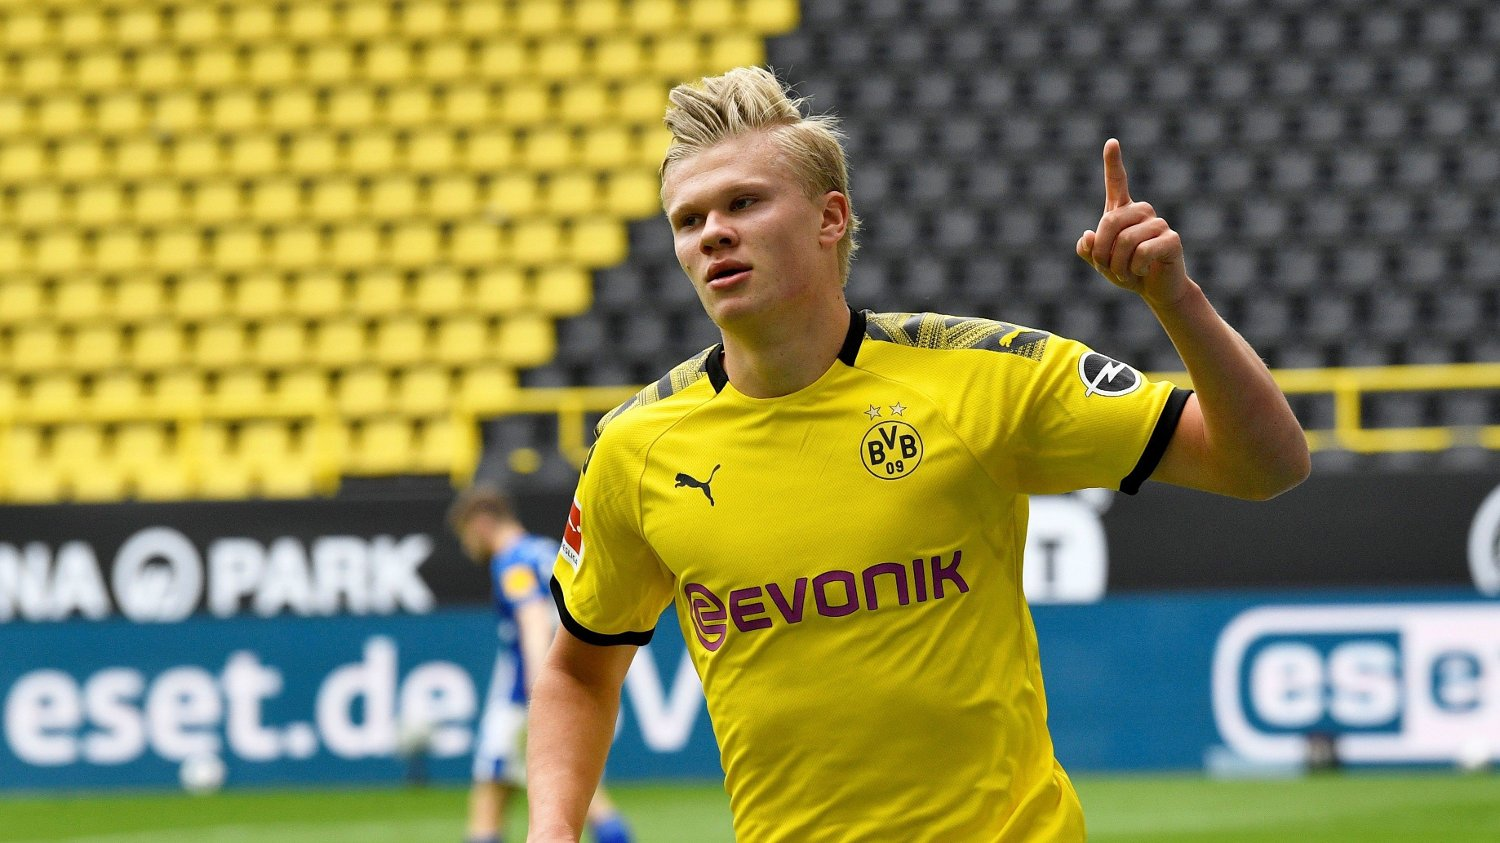 Soccer Football - Bundesliga - Borussia Dortmund v Schalke 04 - Signal Iduna Park, Dortmund, Germany - May 16, 2020 Dortmund's Erling Braut Haaland celebrates scoring their first goal as play resumes behind closed doors following the outbreak of the coronavirus disease Martin Meissner/Pool via REUTERS DFL regulations prohibit any use of photographs as image sequences and/or quasi-video